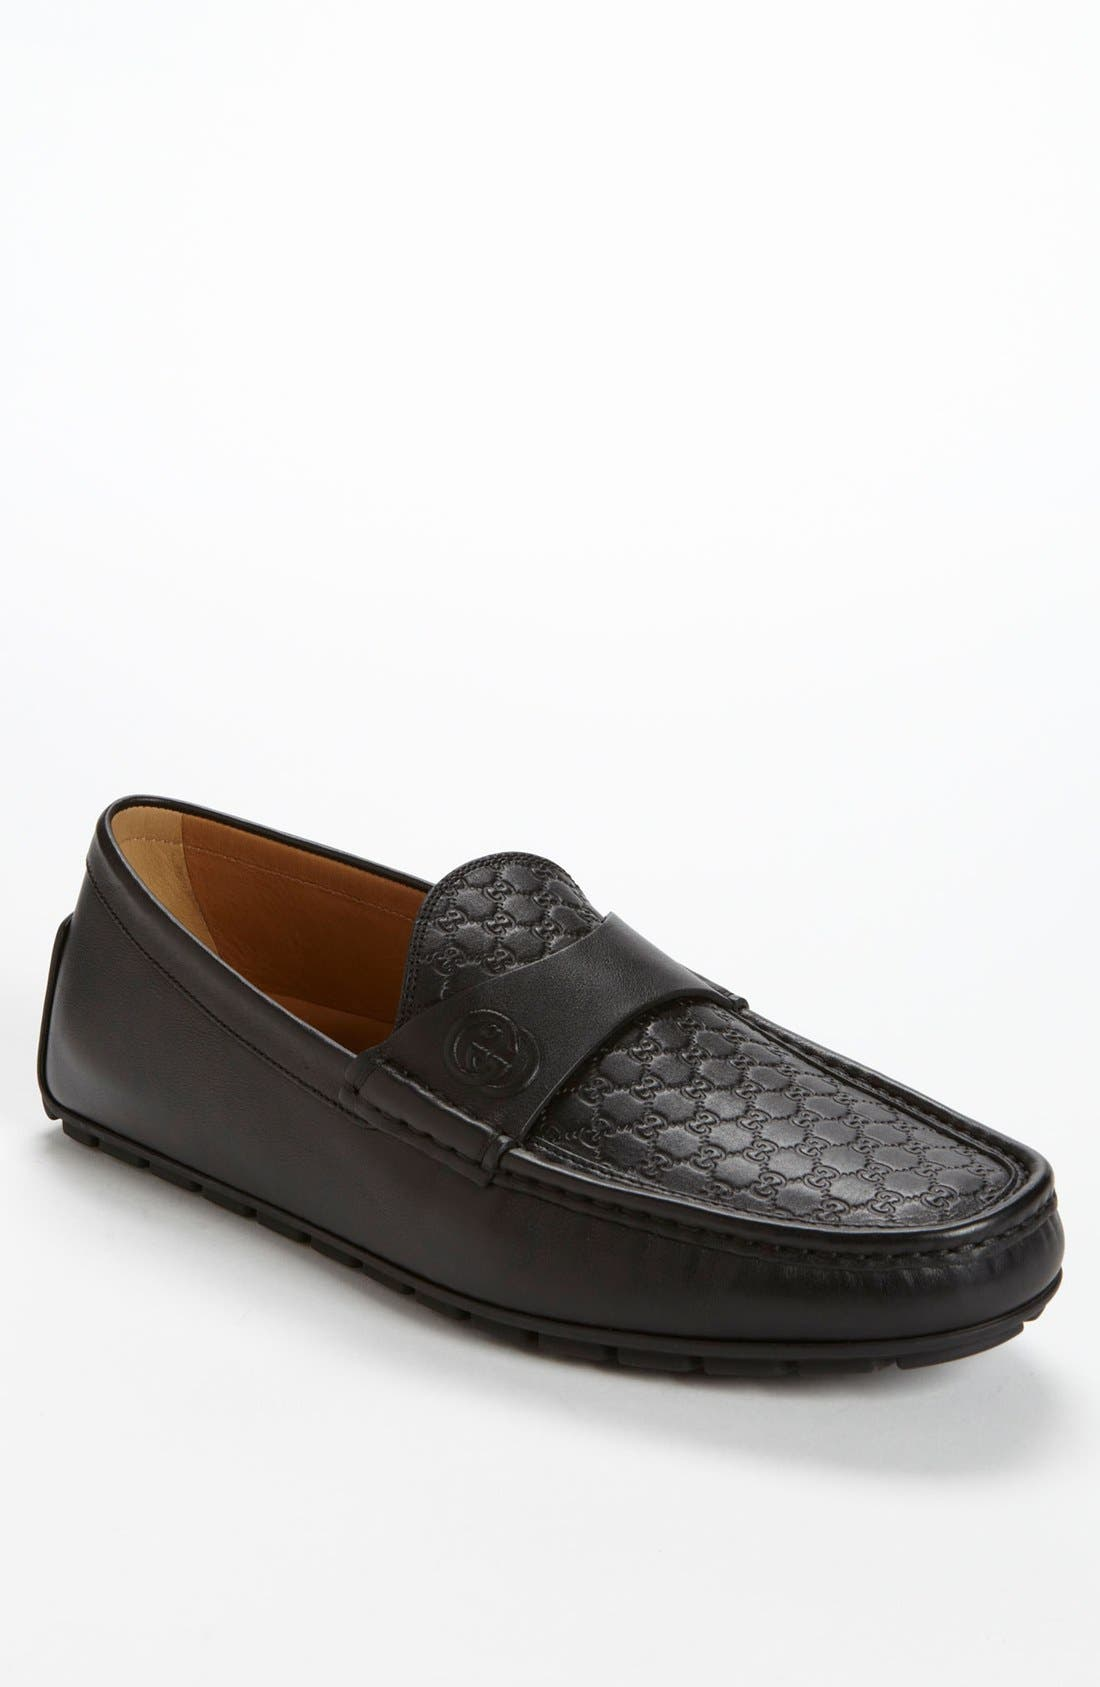 Alternate Image 1 Selected - Gucci 'Blair' Driving Shoe